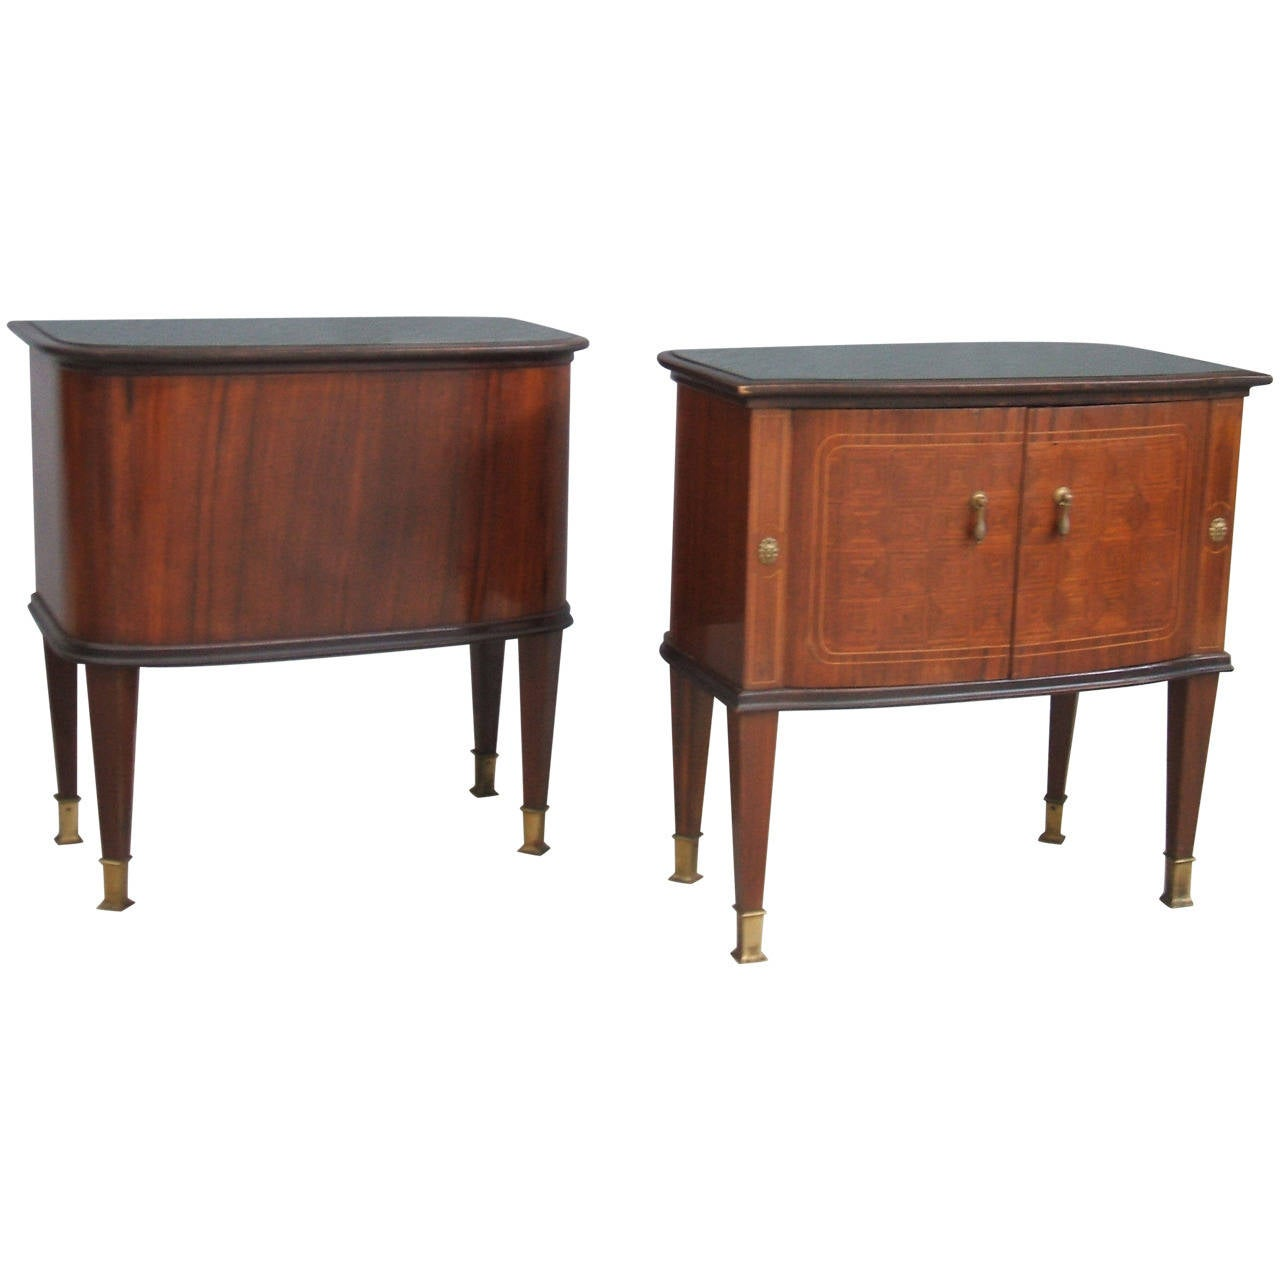 Awesome Pair of Bedside Tables in the Style of Paolo Buffa